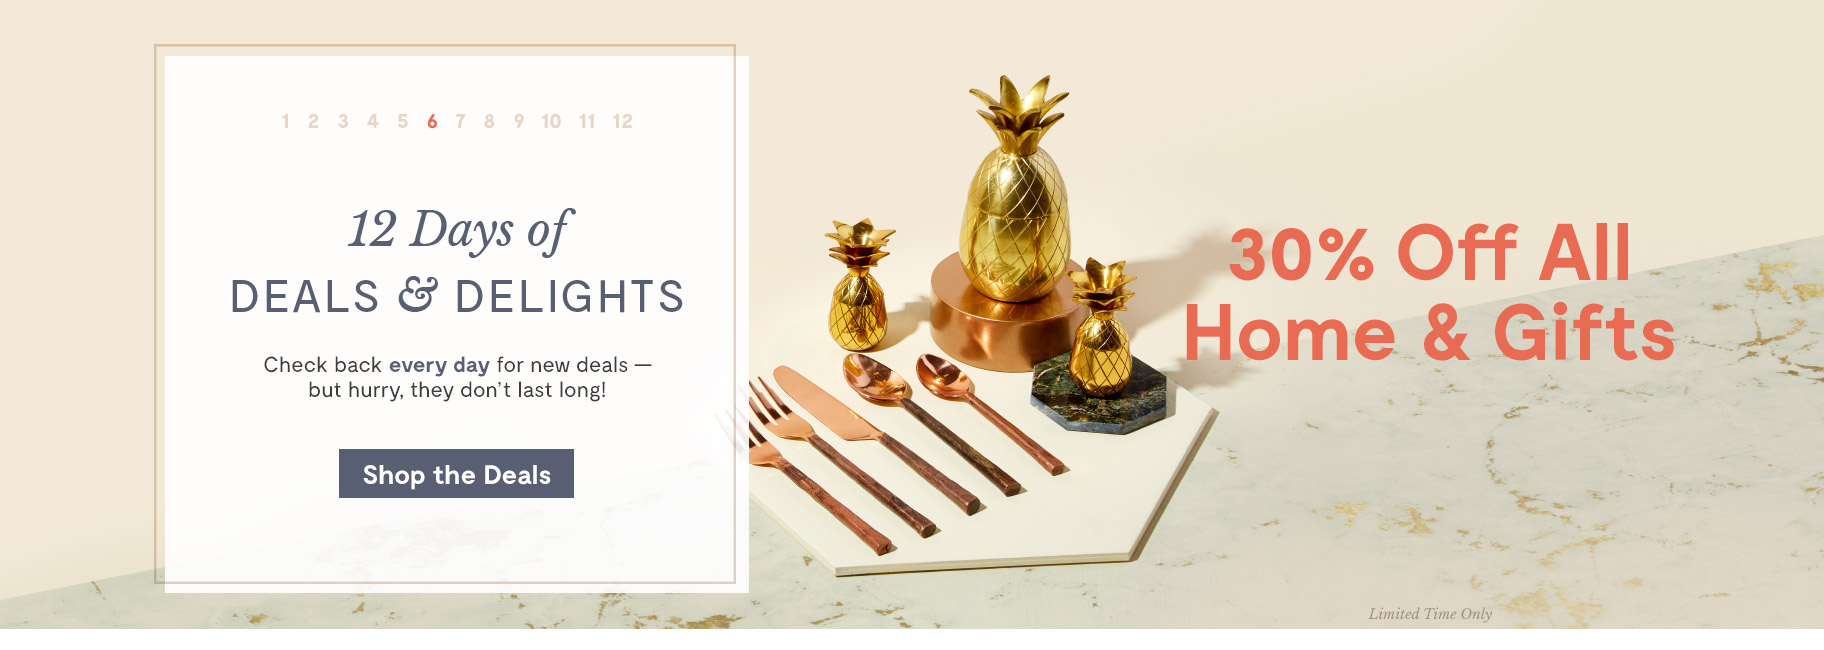 12 Days of Deals & Delights. Day 6 30% Off All Home & Gifts. Shop the Deals.